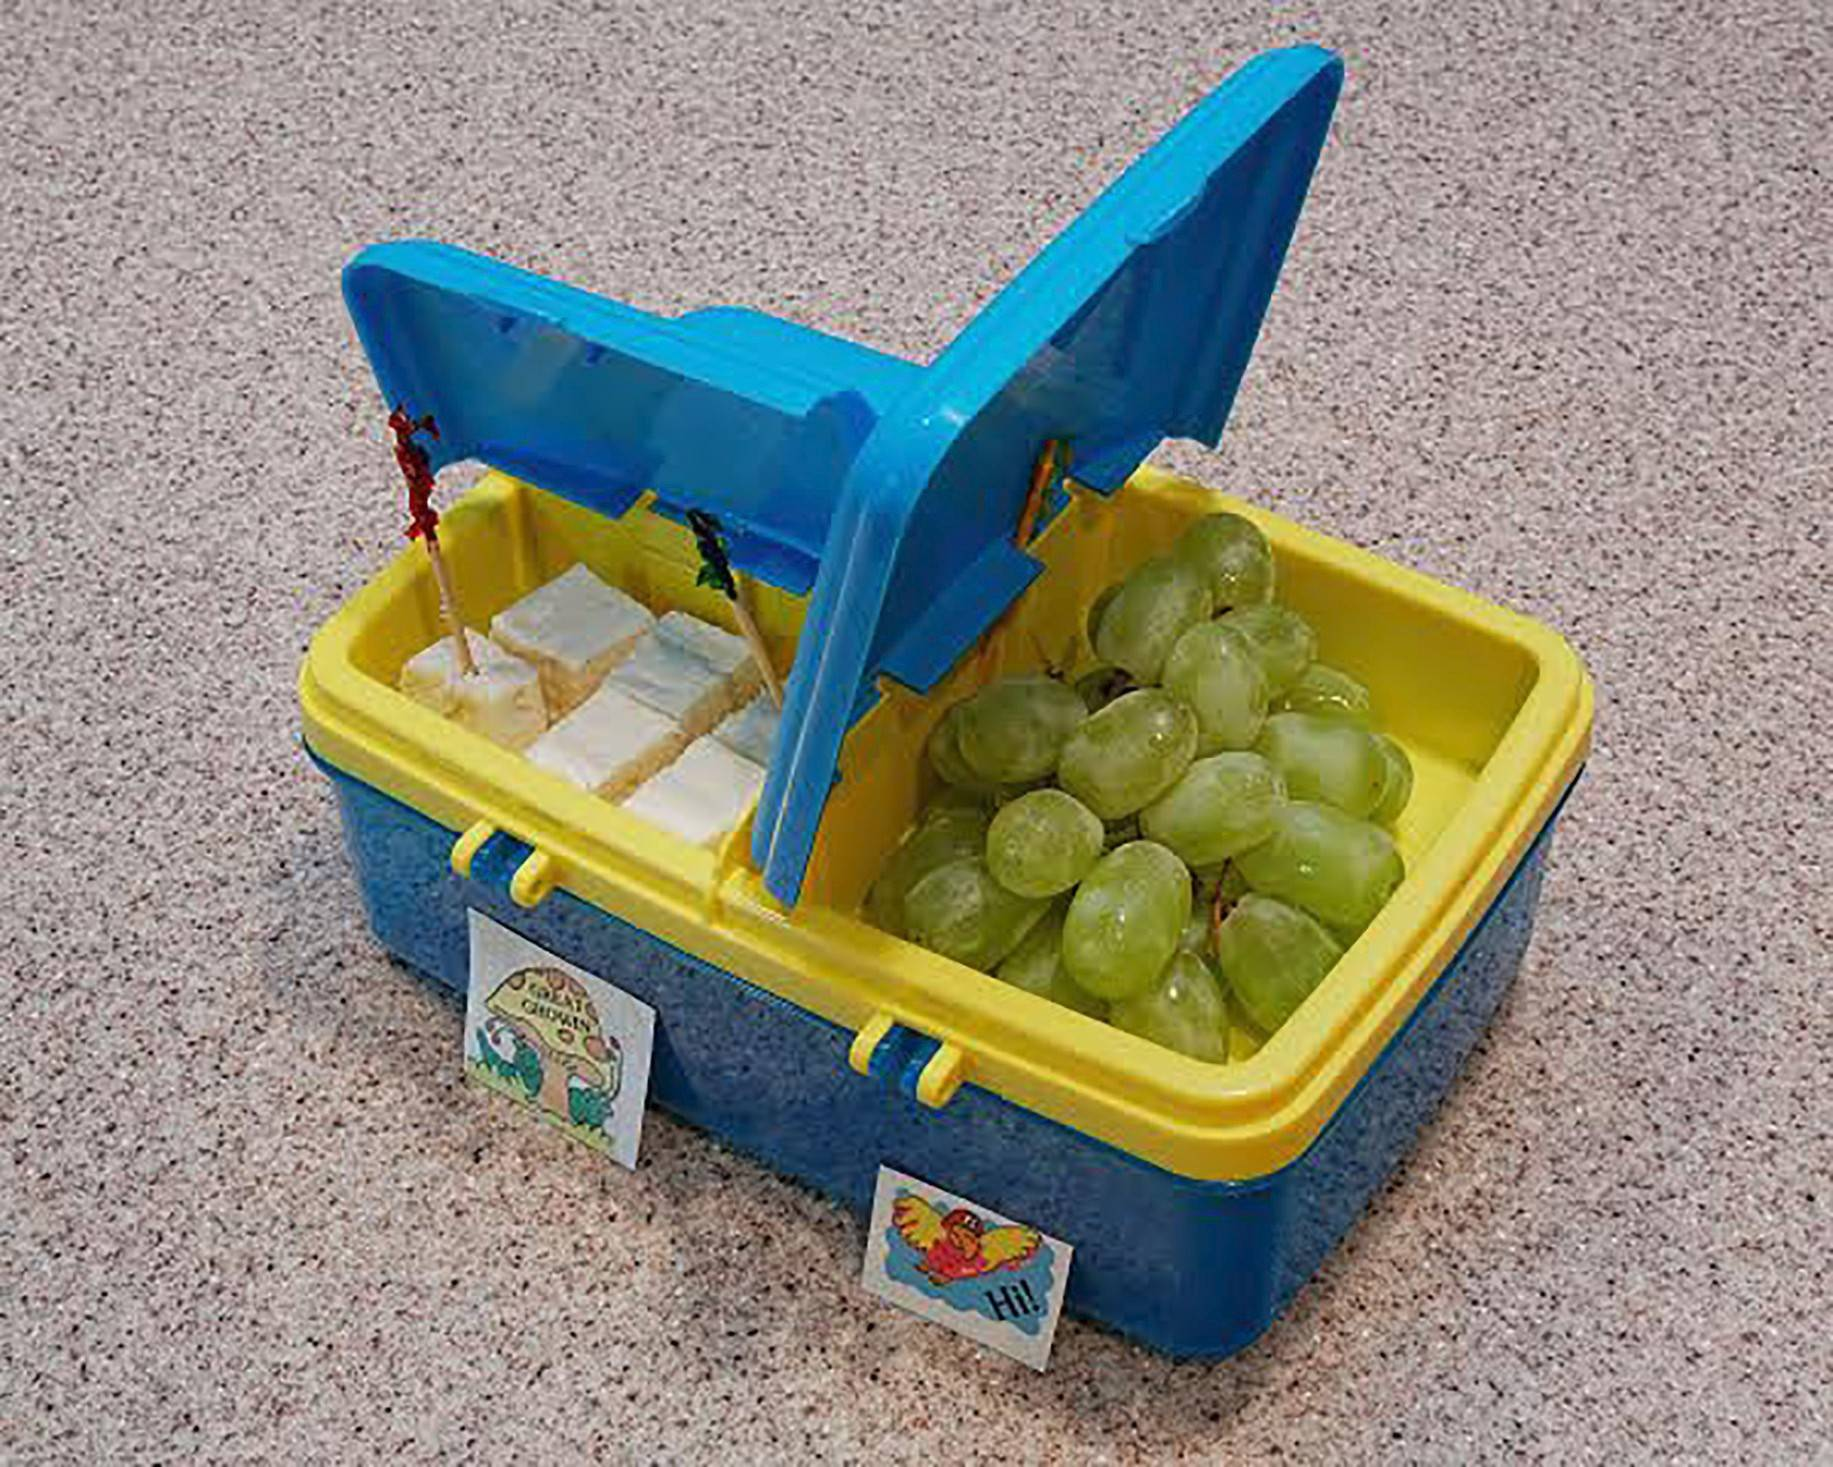 Courtesy of Christine PalumboA compartmentalized lunch box featuring cubed feta cheese and fresh grapes.